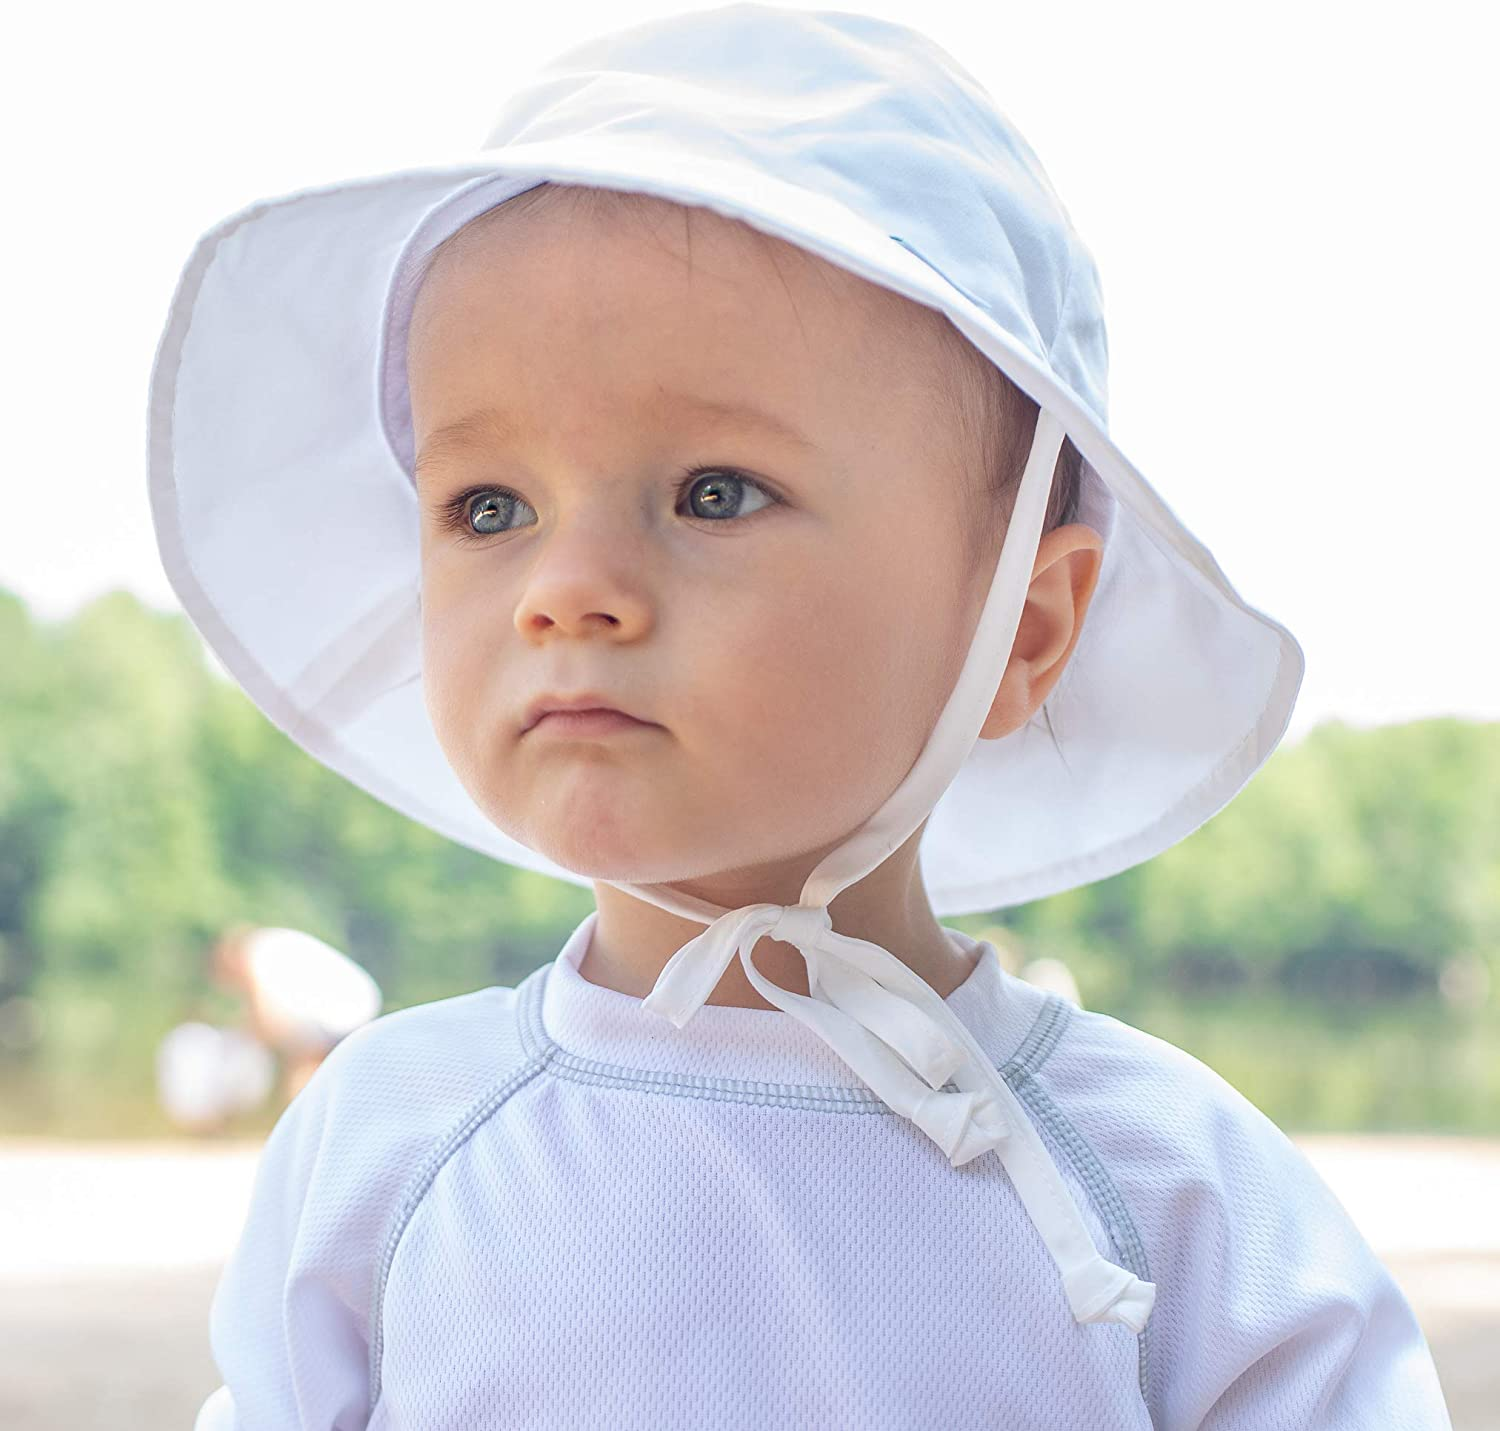 by green sprouts Baby Bucket Sun Protection Hat i play